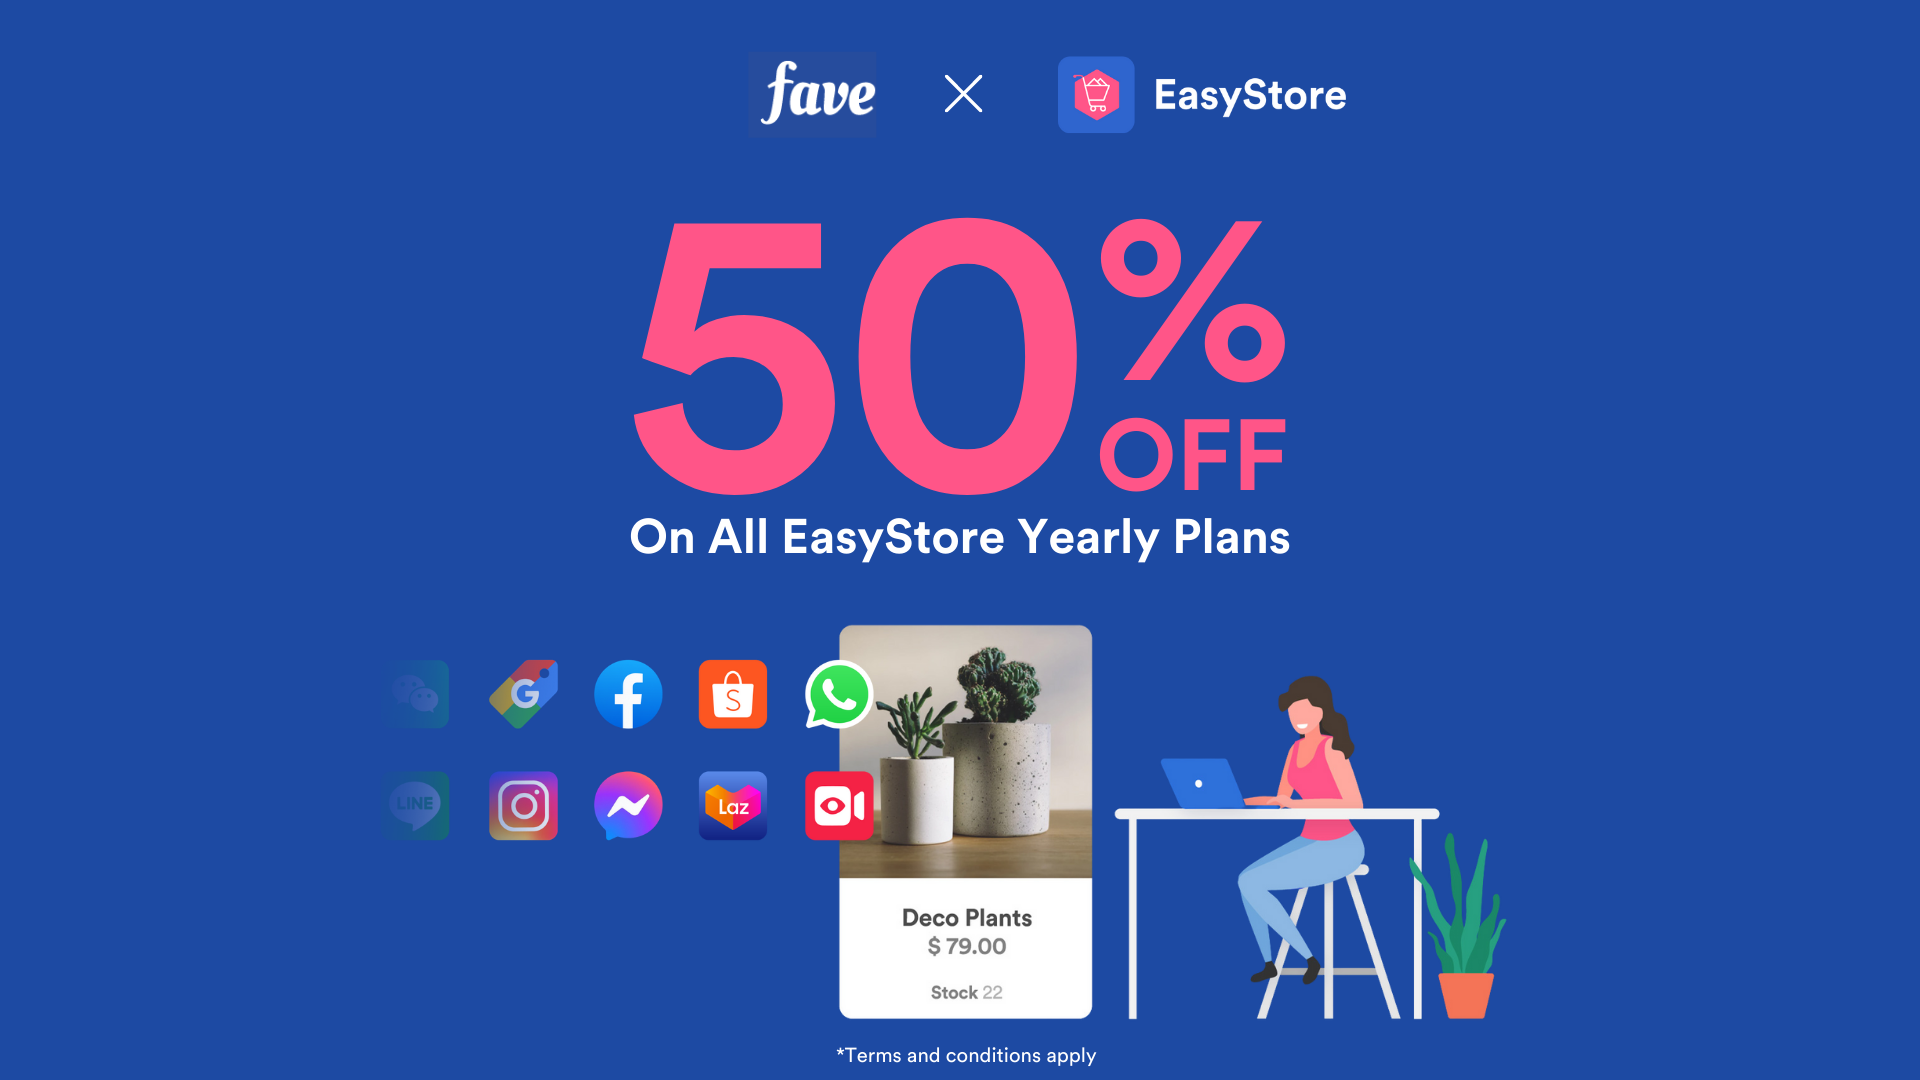 Easystore 50% off